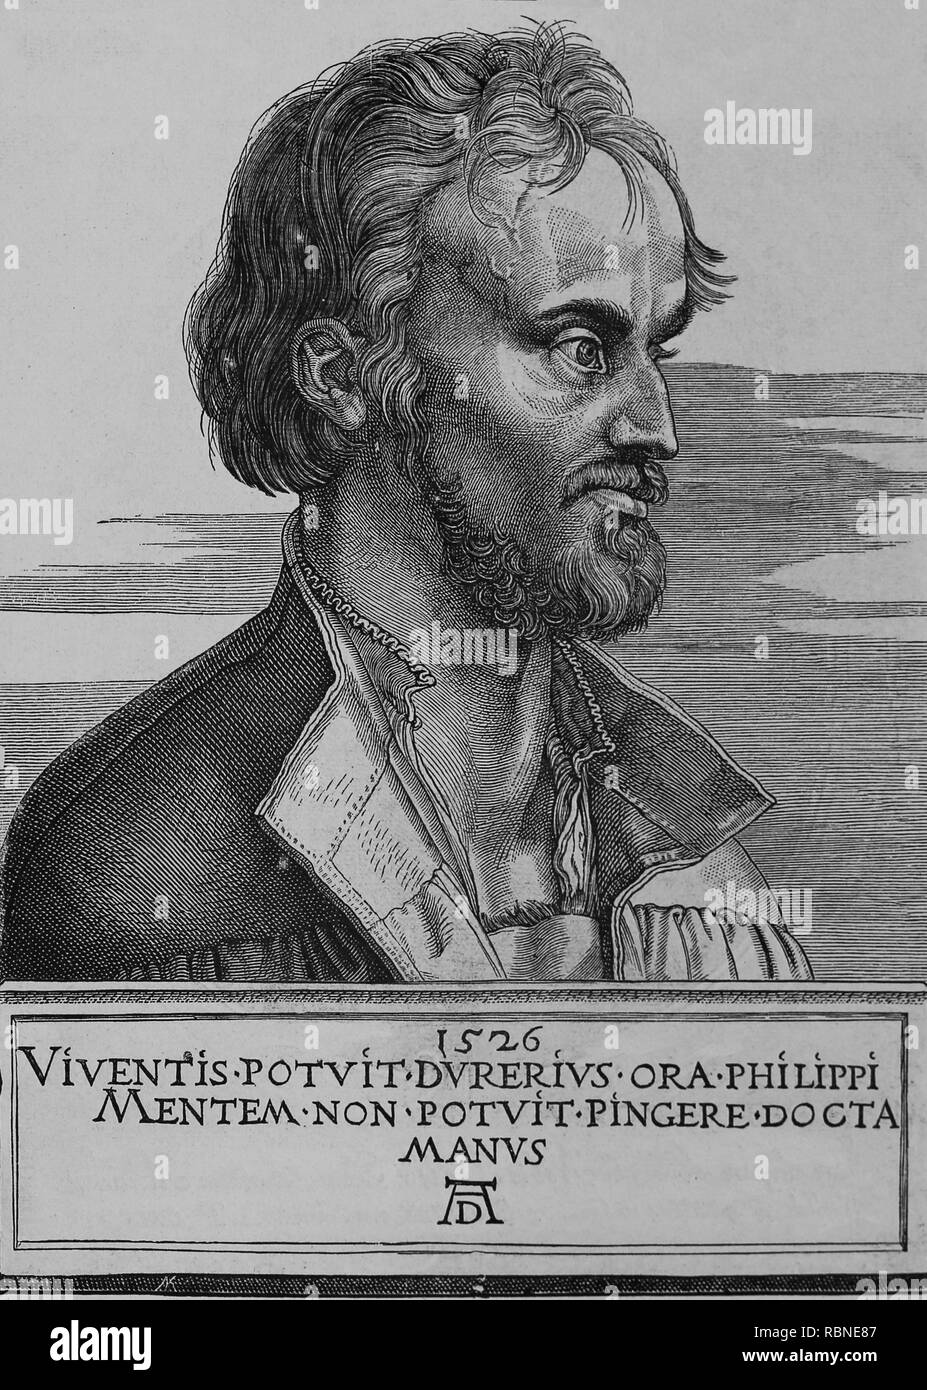 Philip Melanchthon (1497-1560). German Lutheran reformer collaboartor with Martin Luther. Portrait. Engraving, 1887 of Germania. - Stock Image